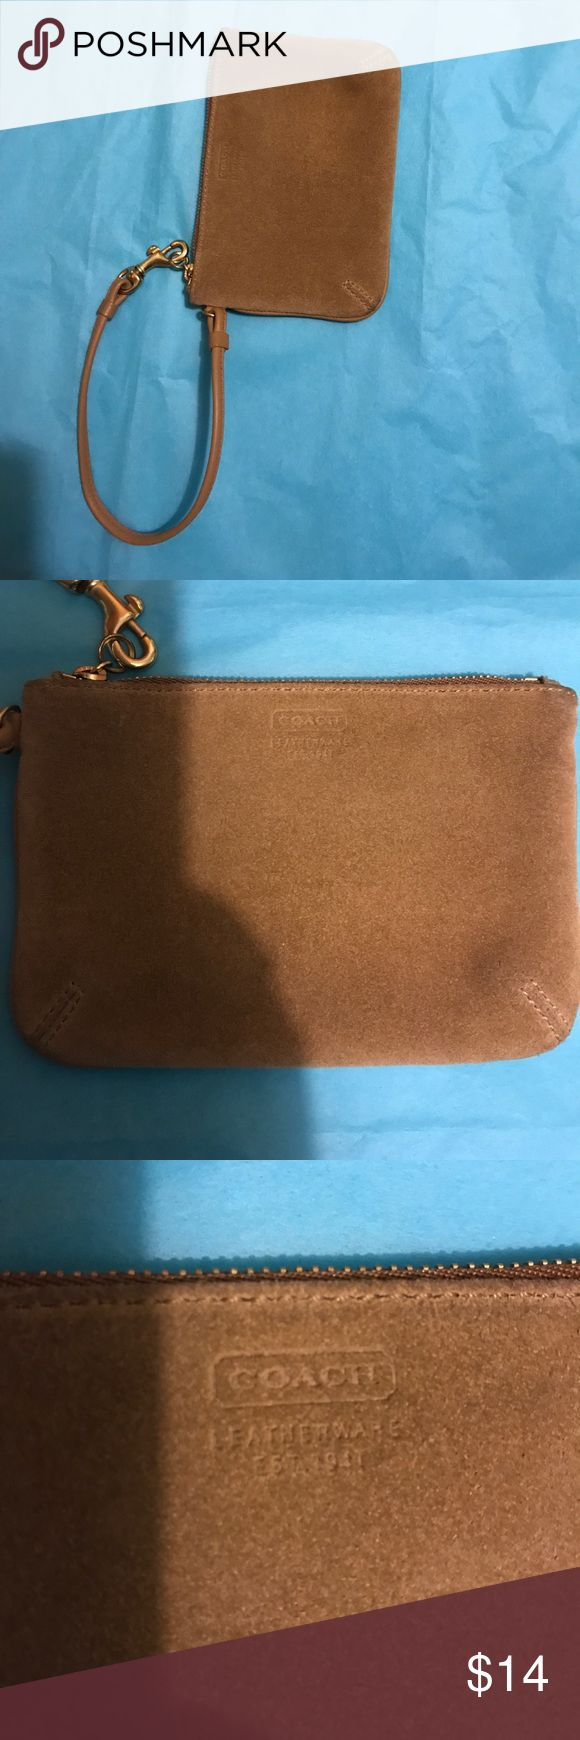 Tan Suede Coach Wristlet Pouch 6x4 tan suede coach wristlet. Good condition. Bit of use shown on edges. Coach Bags Clutches & Wristlets